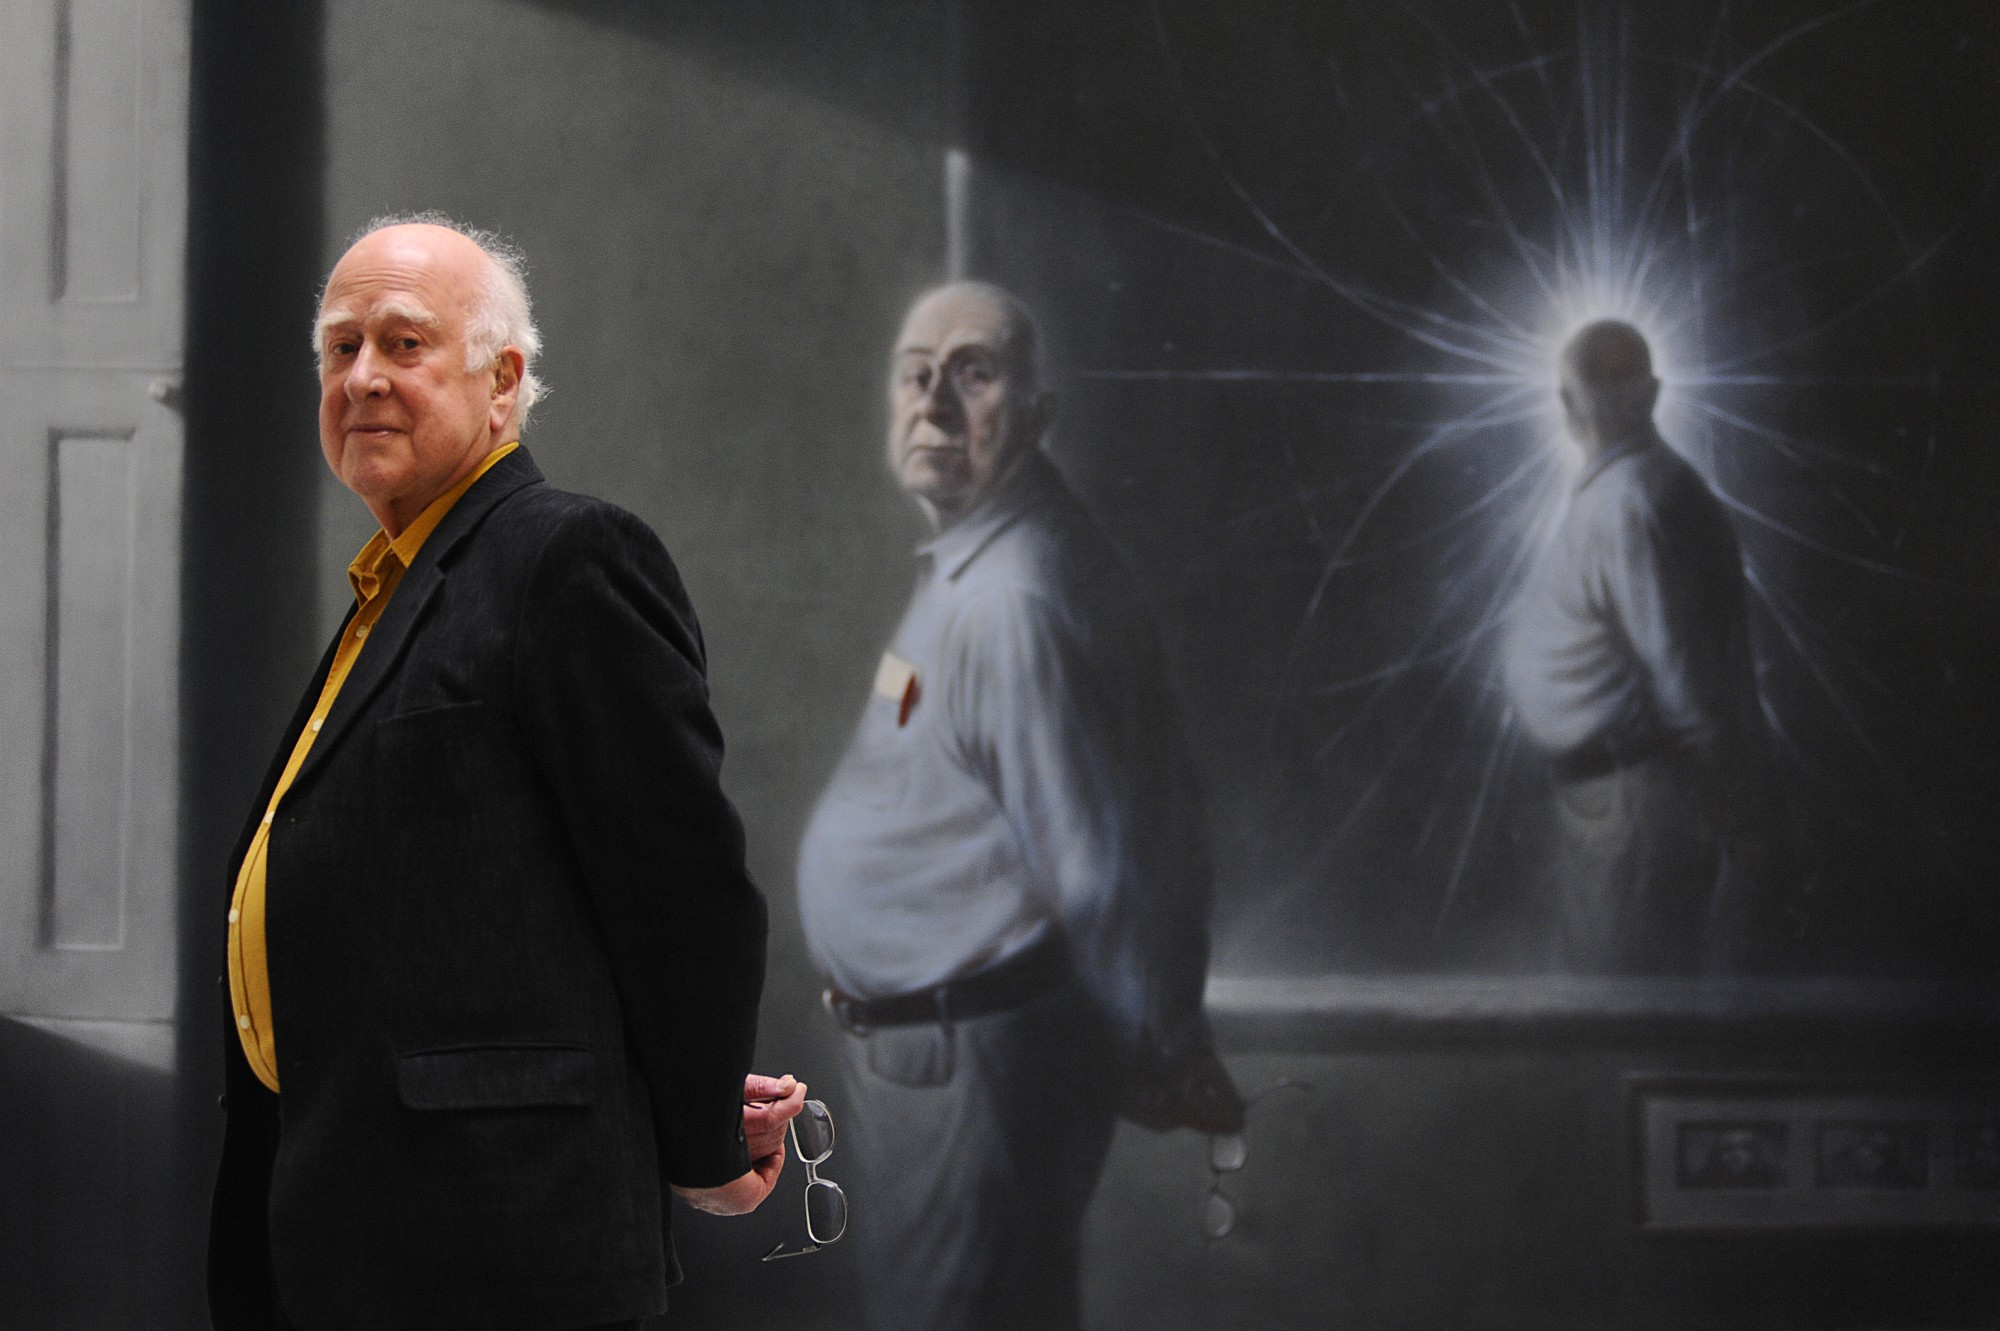 Peter Higgs in front of his portrait by Ken Currie at its unveiling on 2nd March 2009.